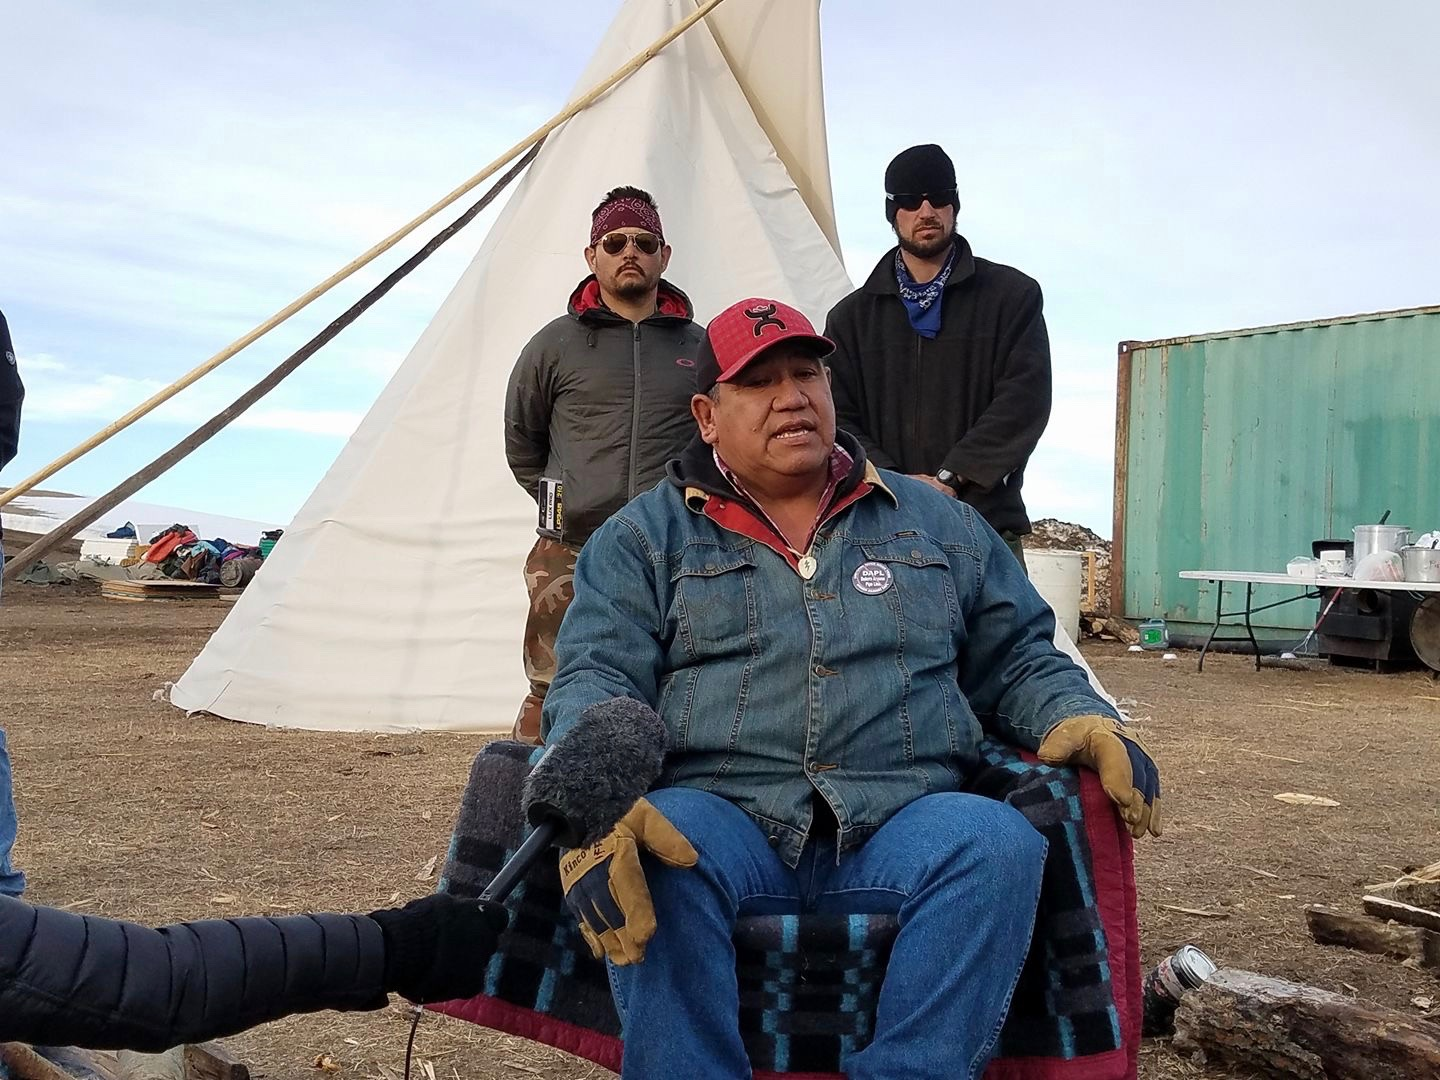 Cheyenne River Sioux Tribe calls out Trump for 'lies' on Dakota Access